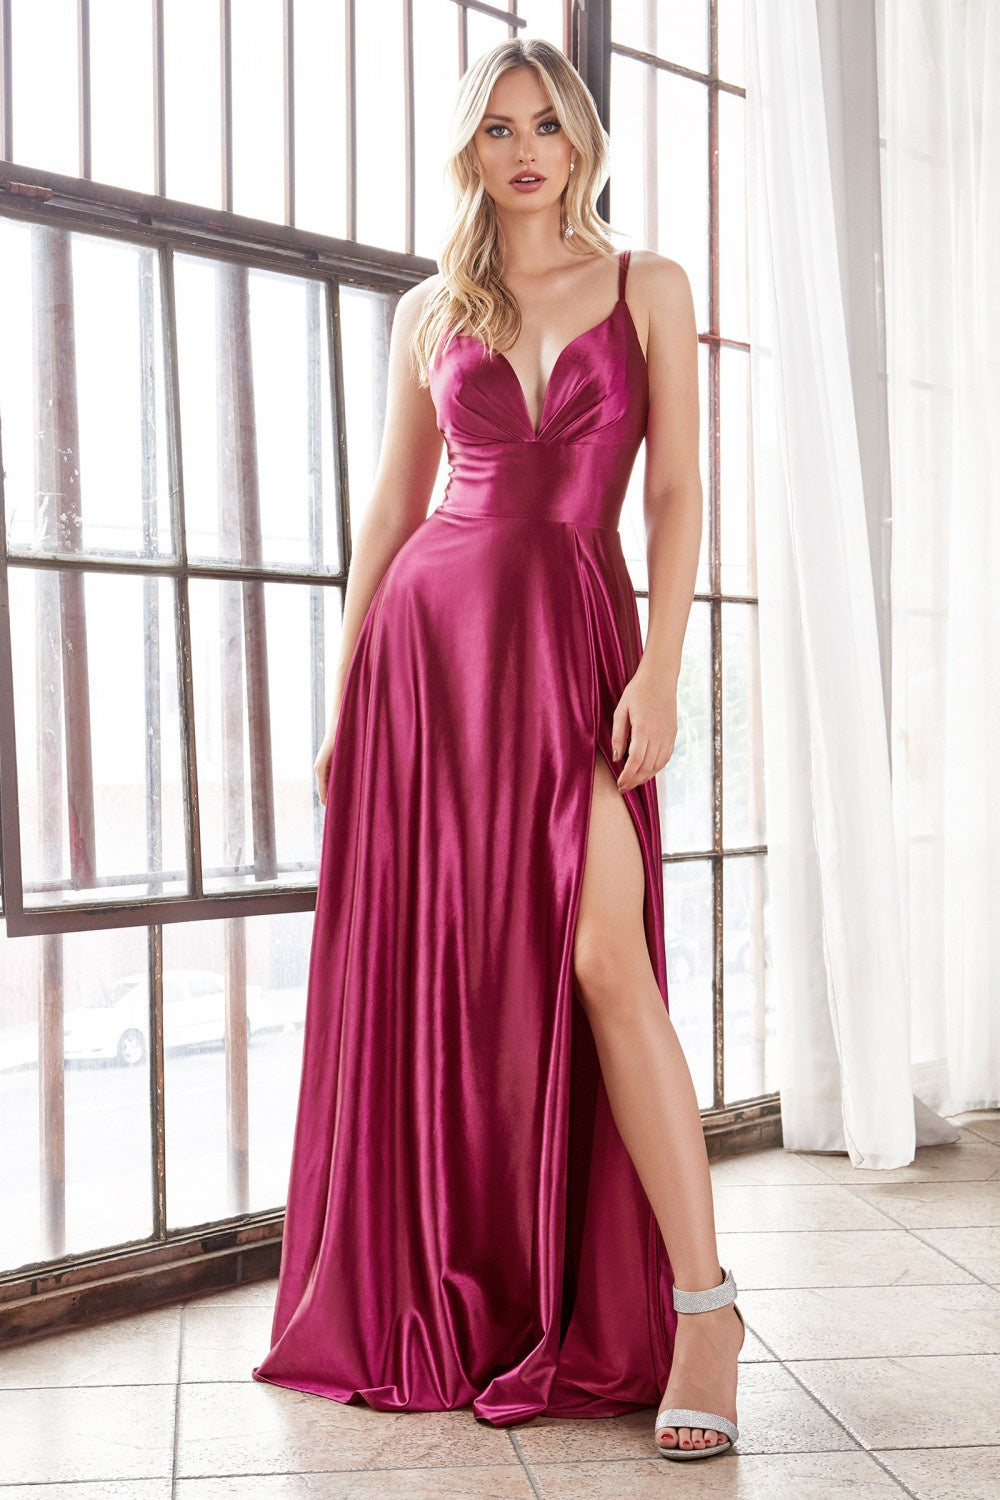 Lipstick Satin a-line dress